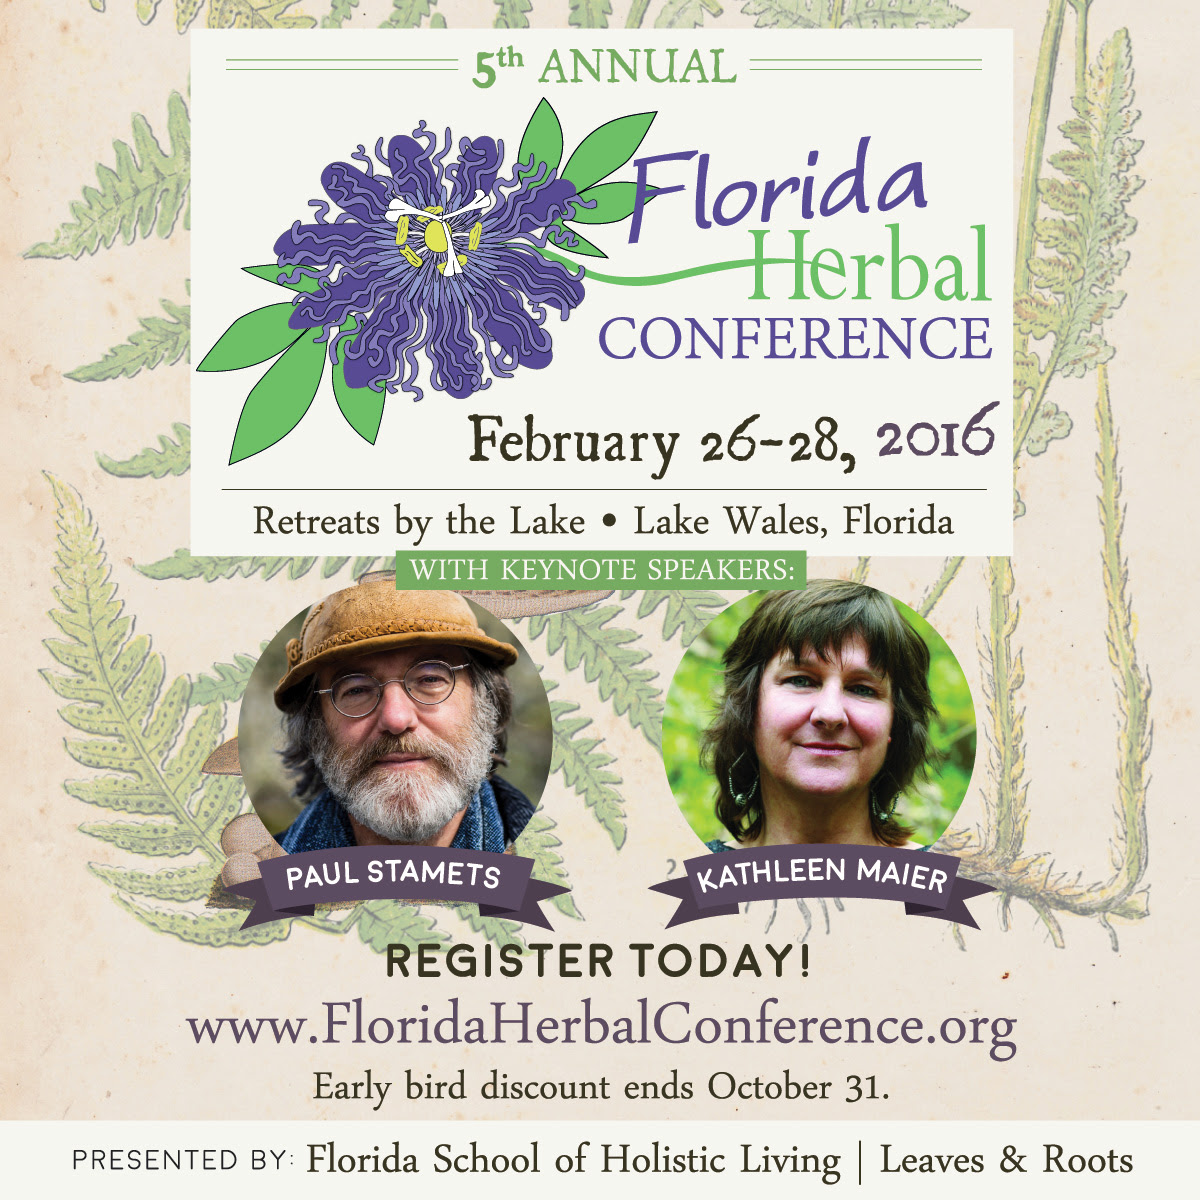 Florida Herbal Conference - win a free ticket!